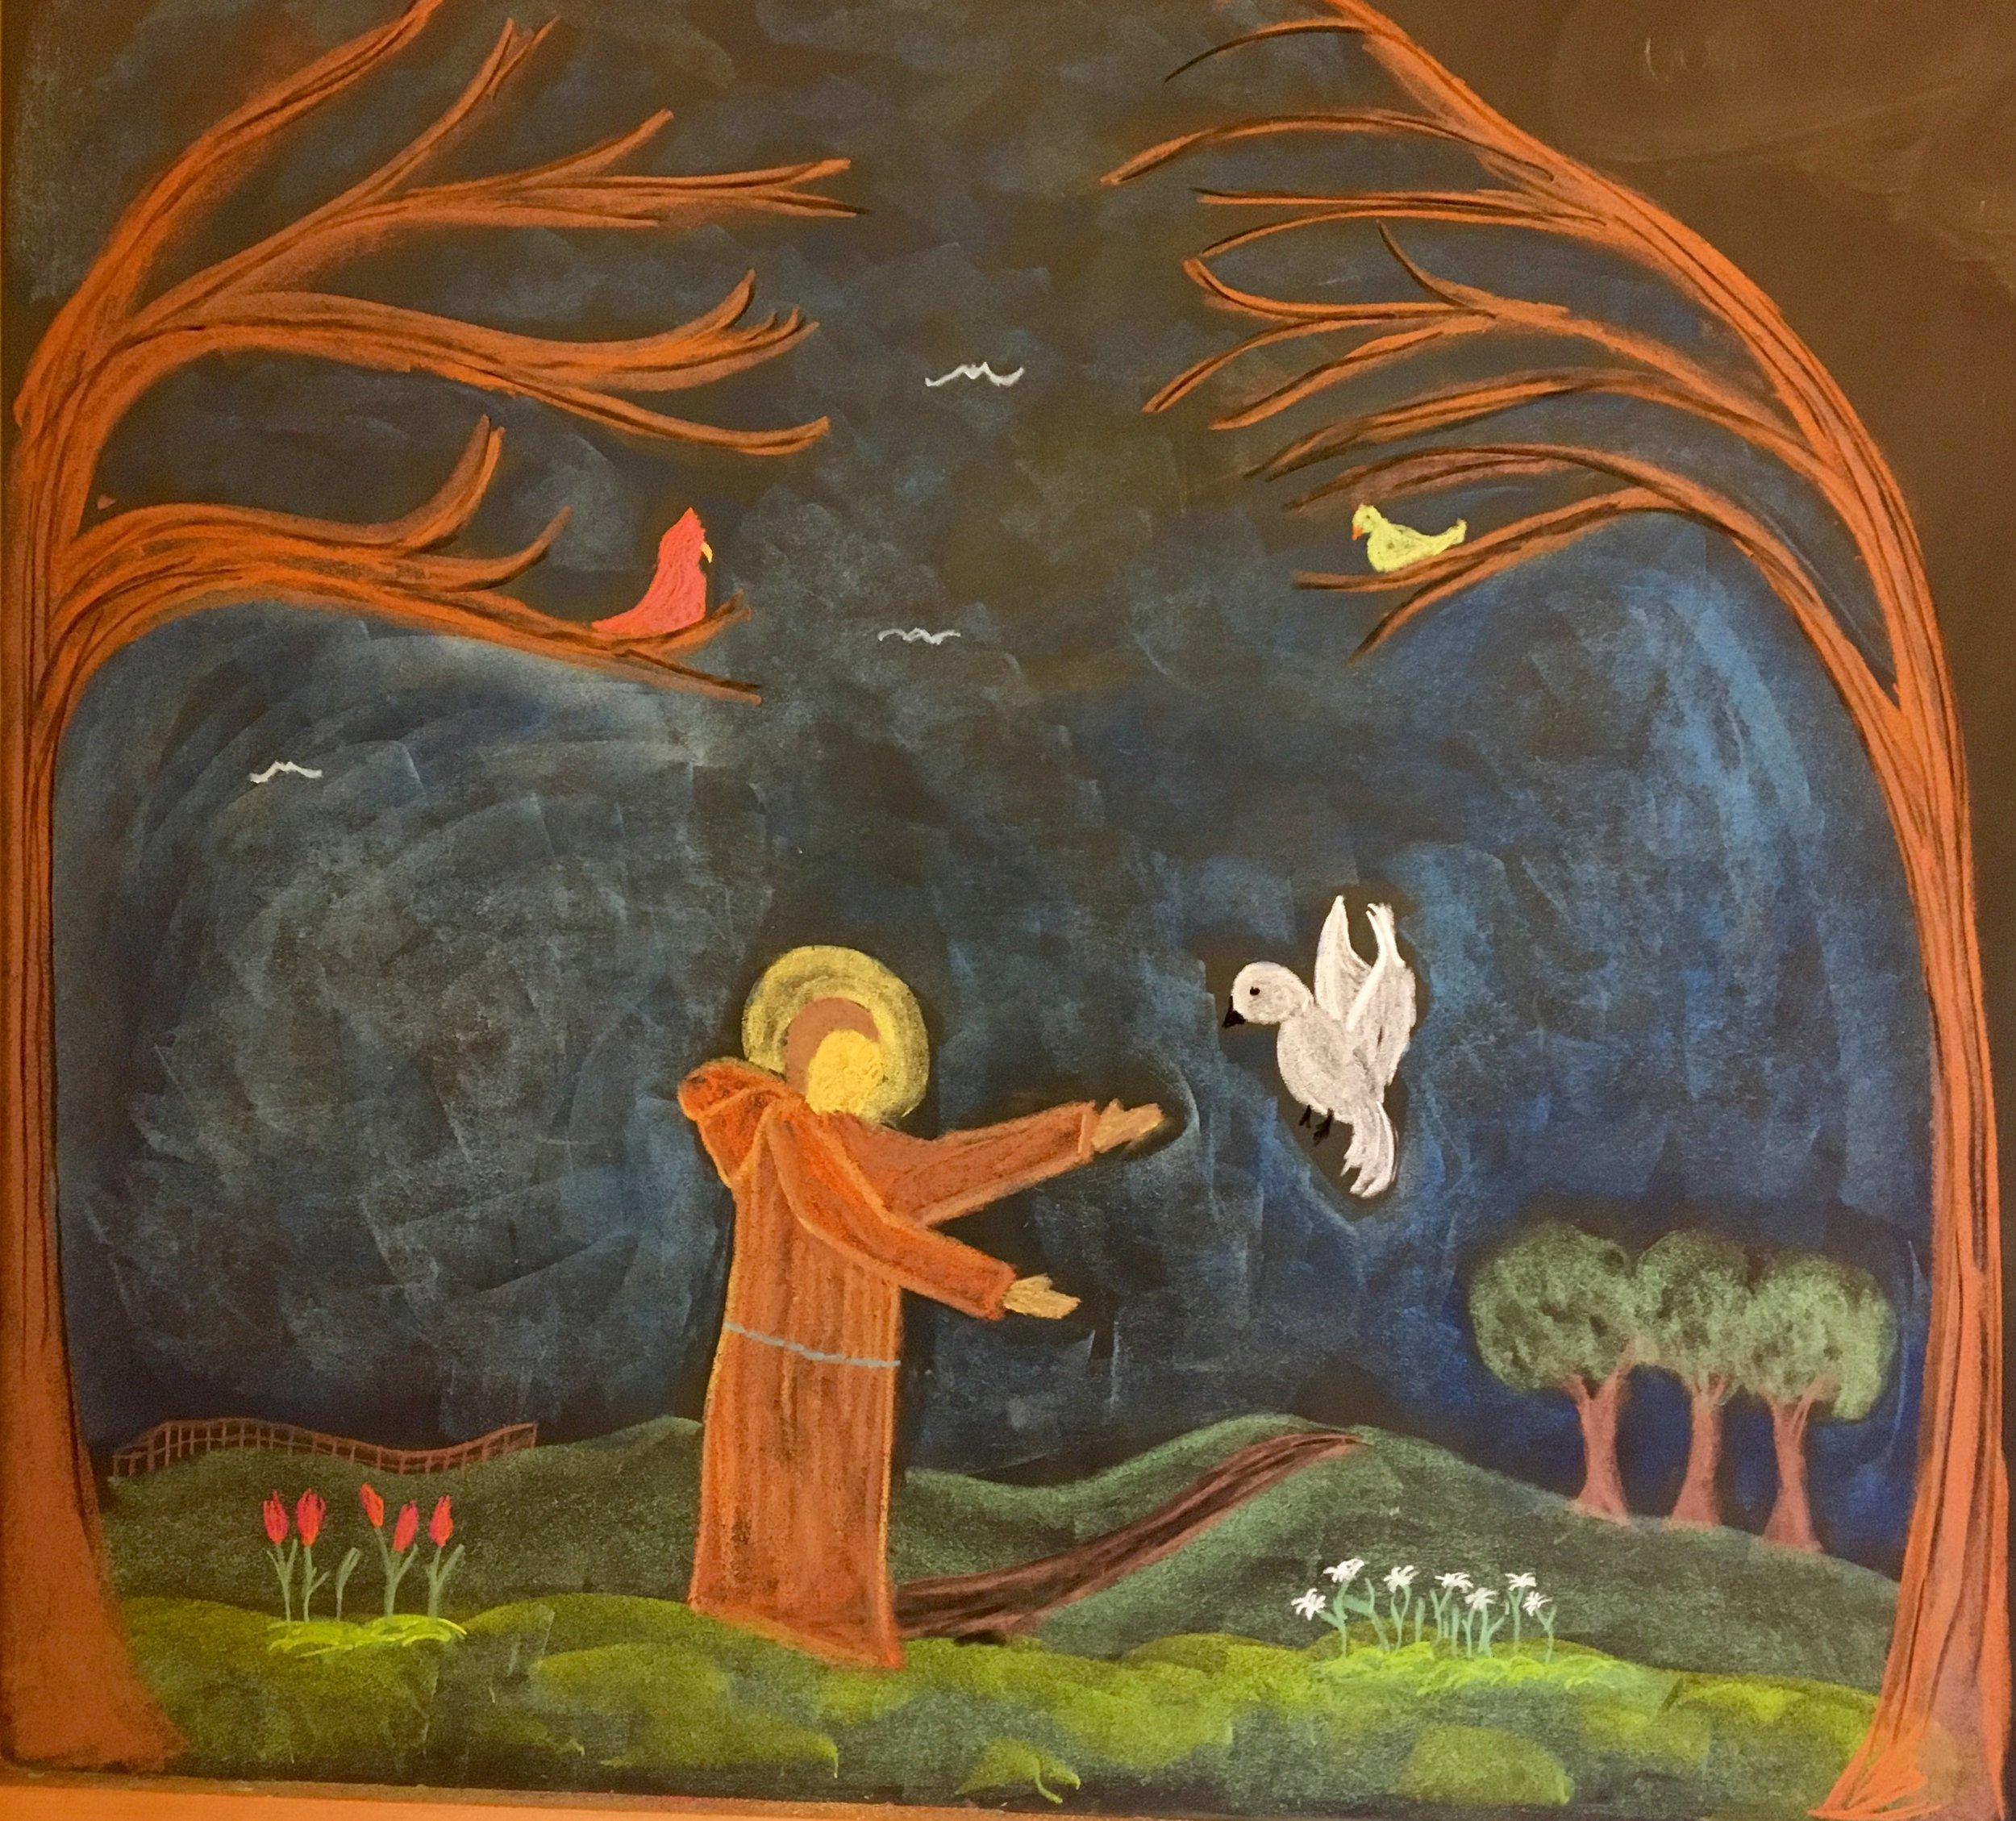 Saint Francis of Assisi drawn in chalk.